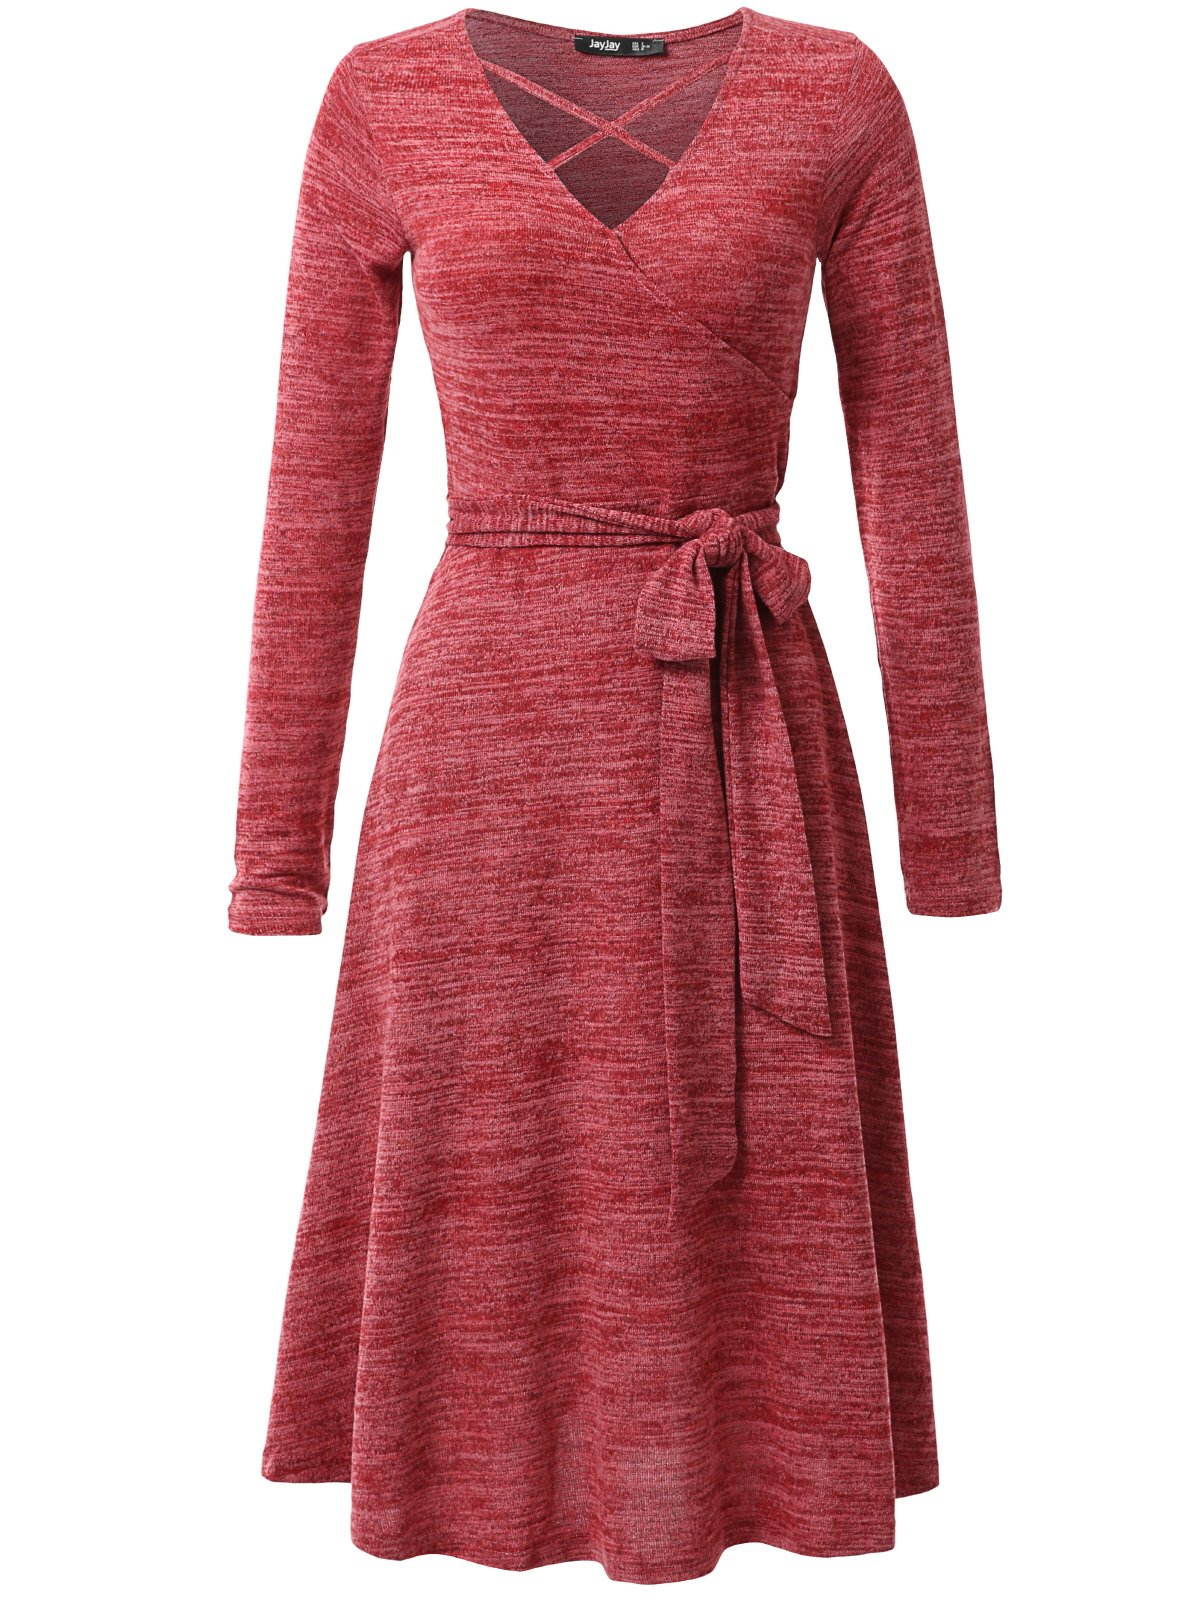 JayJay Women Casual Caged Neck Long Sleeve Knit Sweater Faux Wrap Dress With Bow Belt,Red,2XL